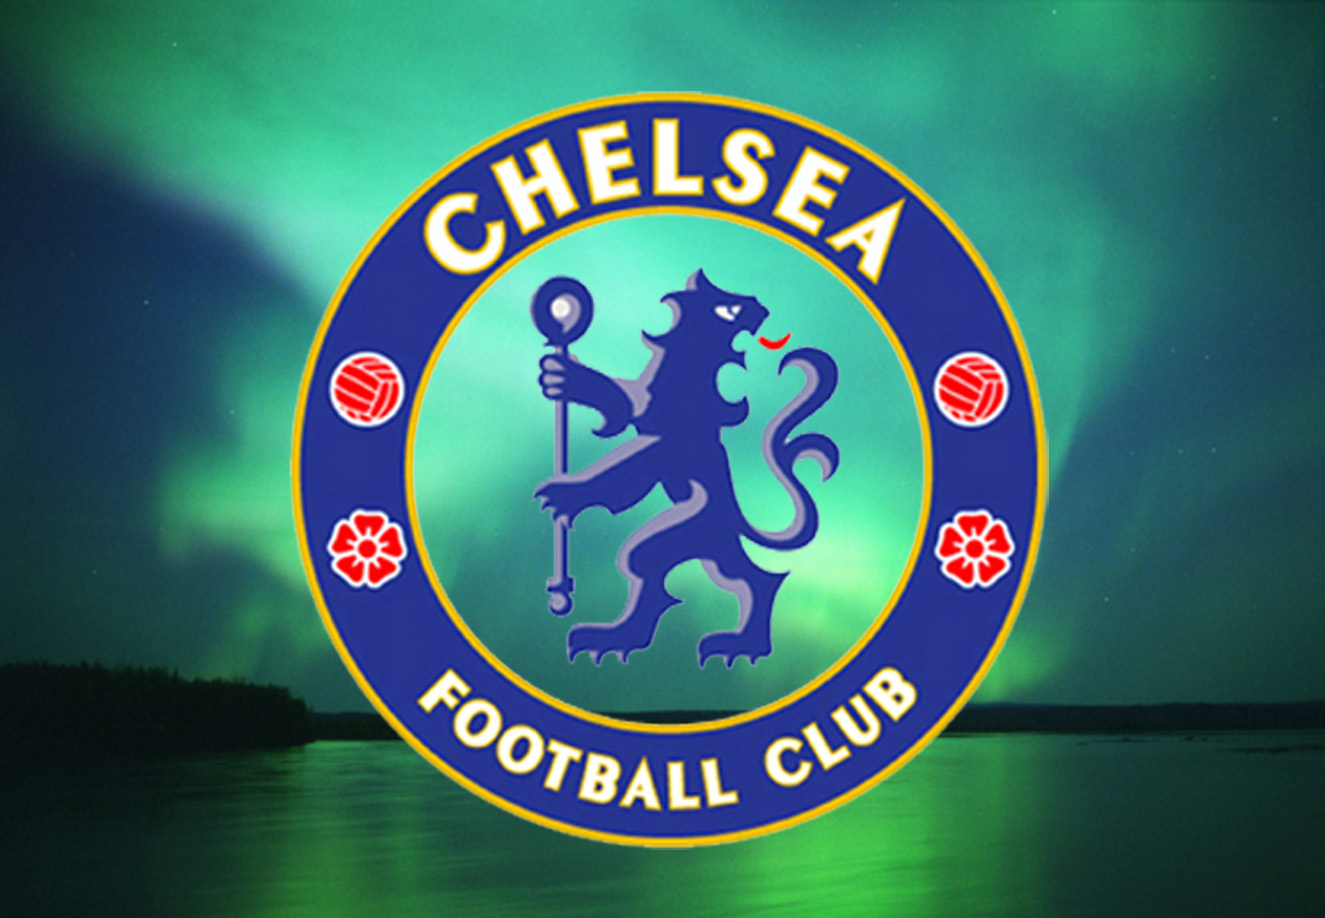 Free Download Chelseakers Logo Chelsea Fc Wallpaper 1325x918 For